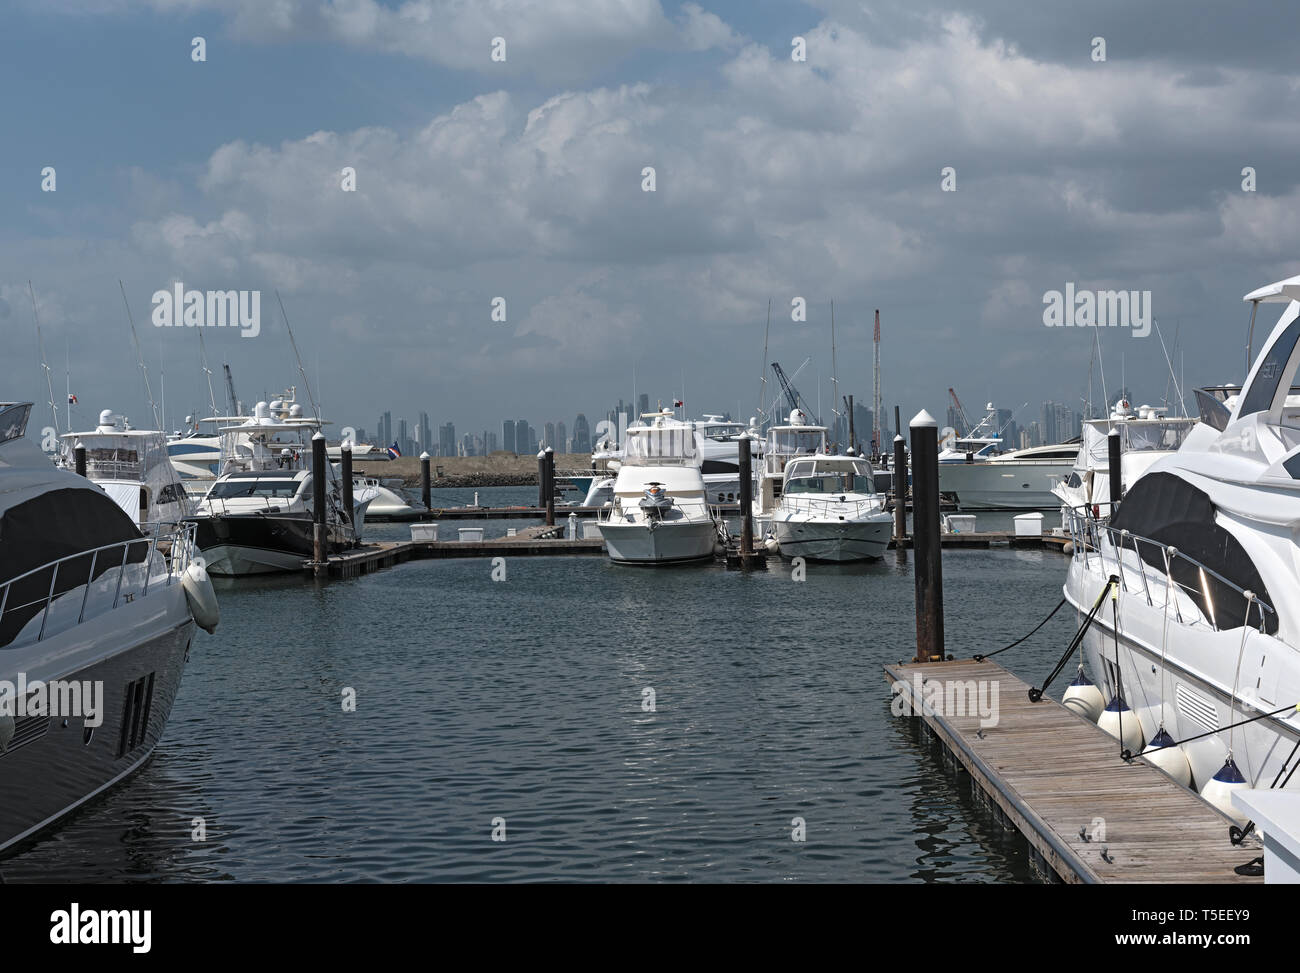 panama skyline of the city from the marina of perico island at the amador causeway - Stock Image